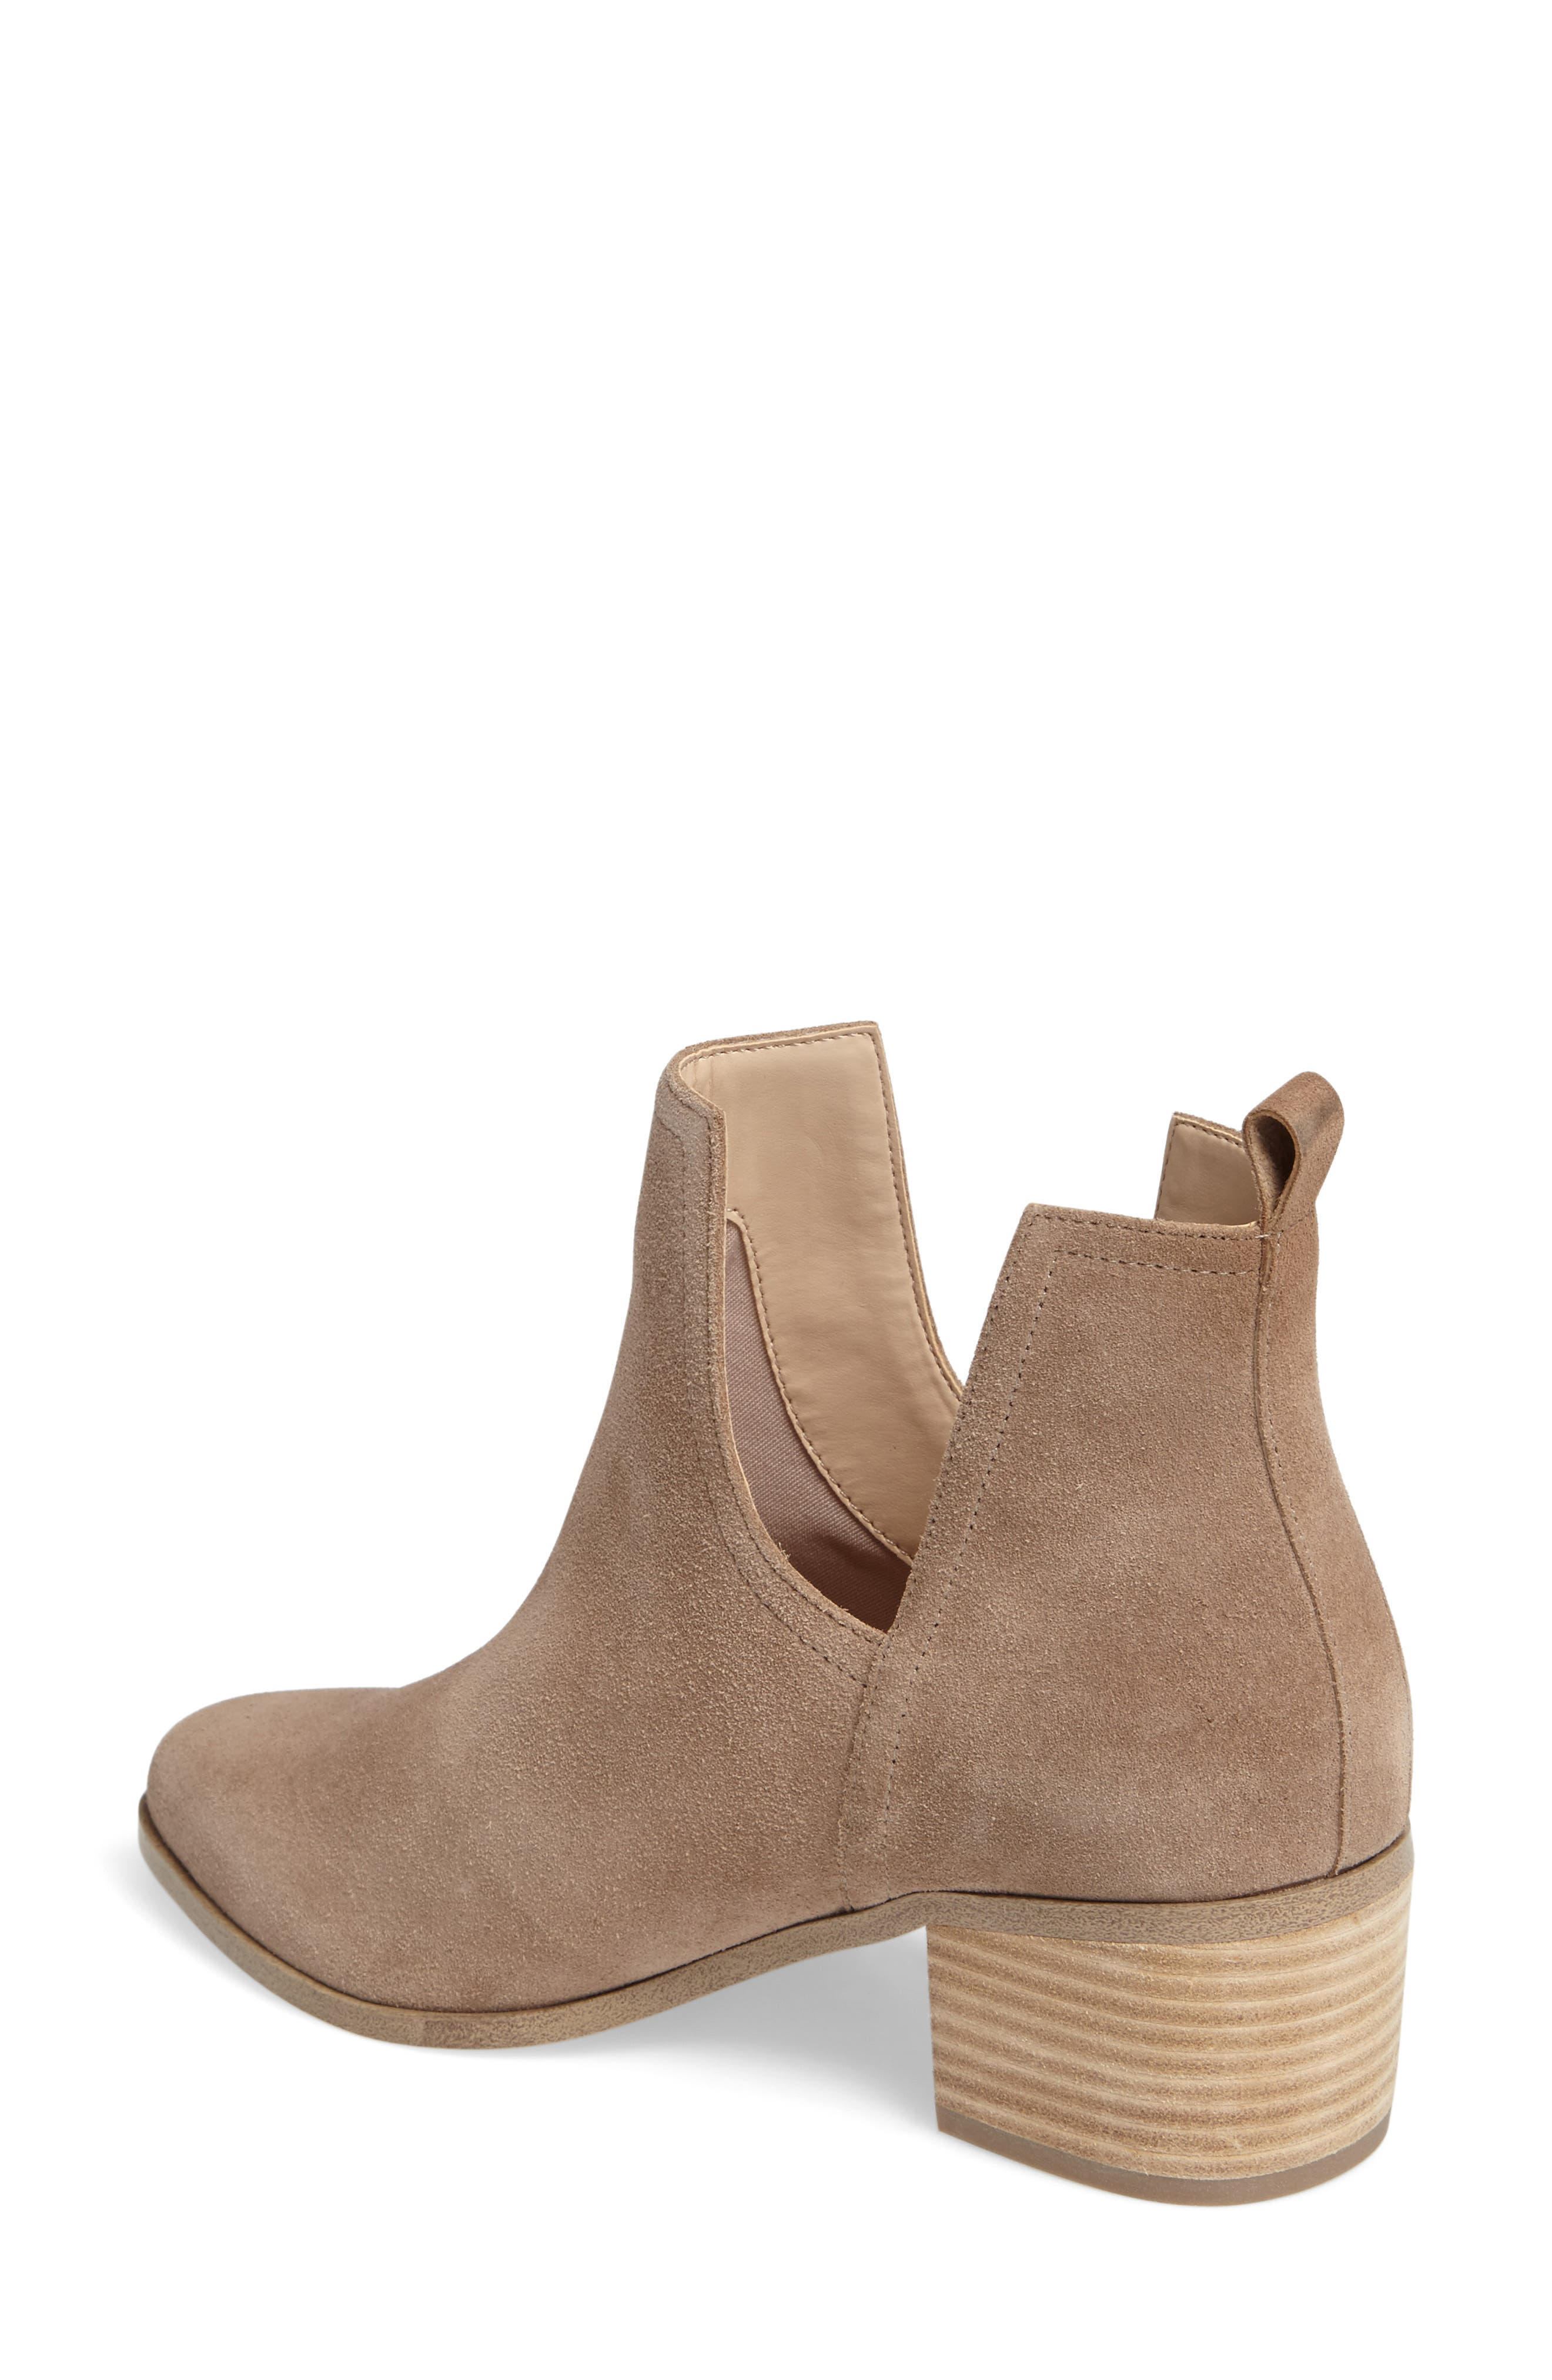 Madrid Bootie,                             Alternate thumbnail 2, color,                             Sand Suede